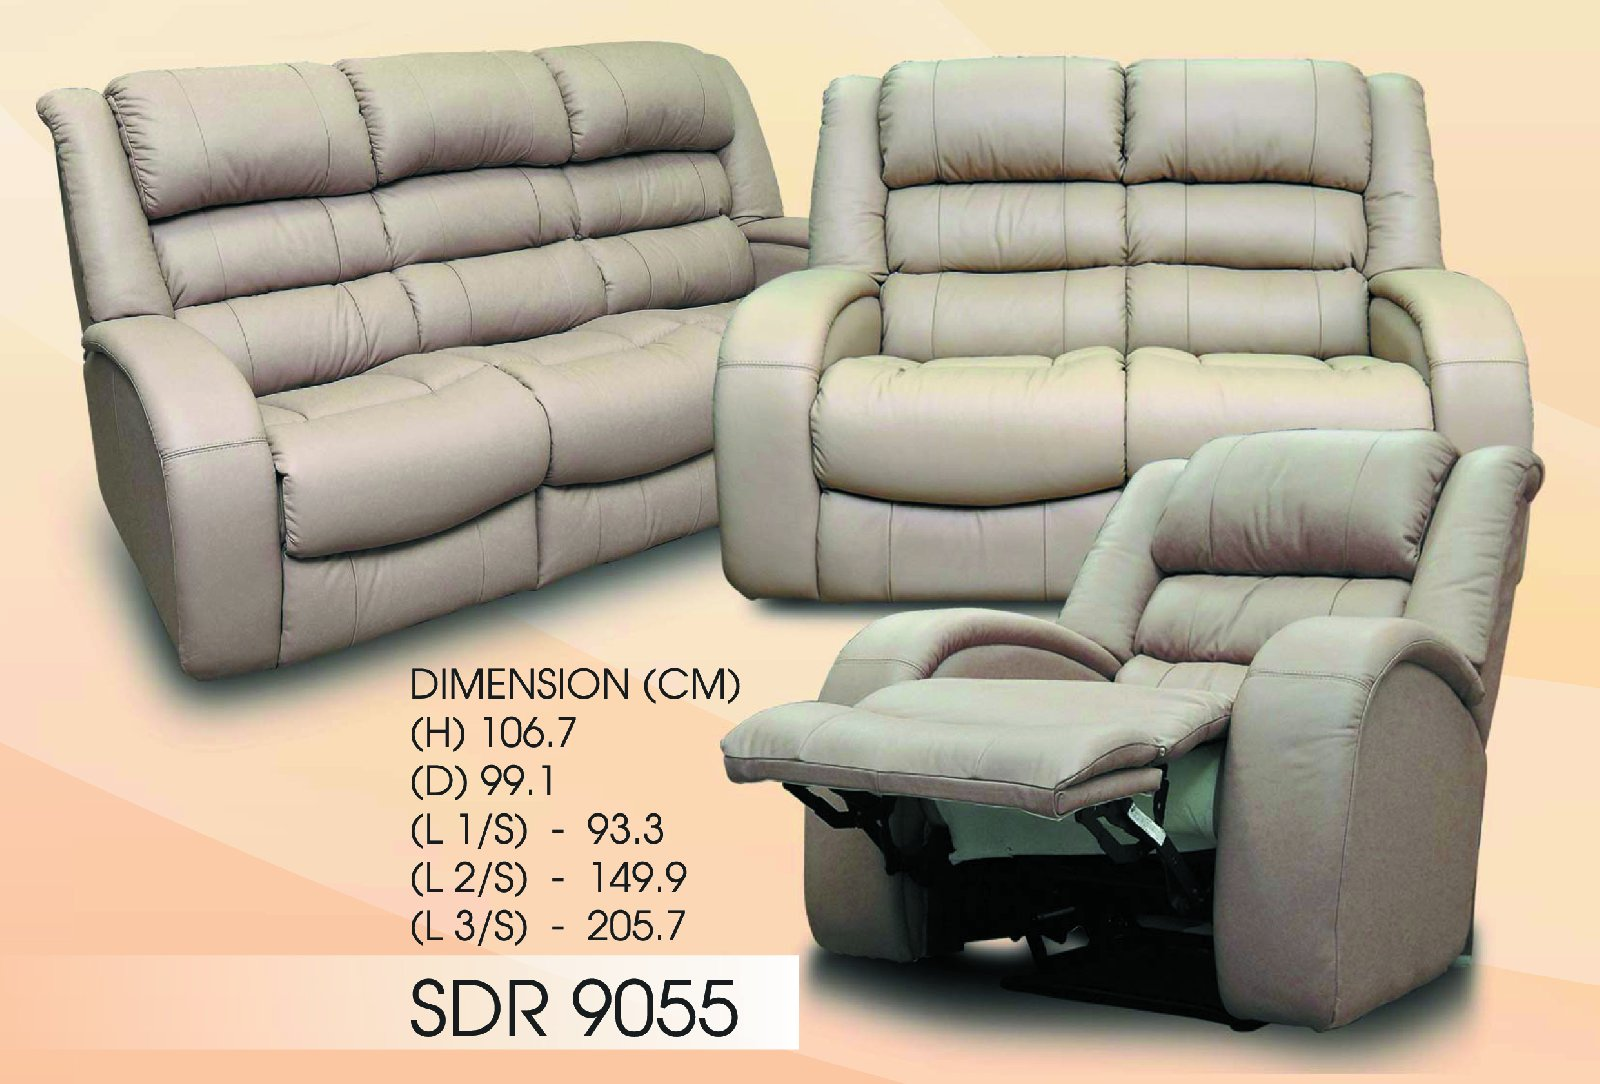 SDR 9055 Single Recliner Chair